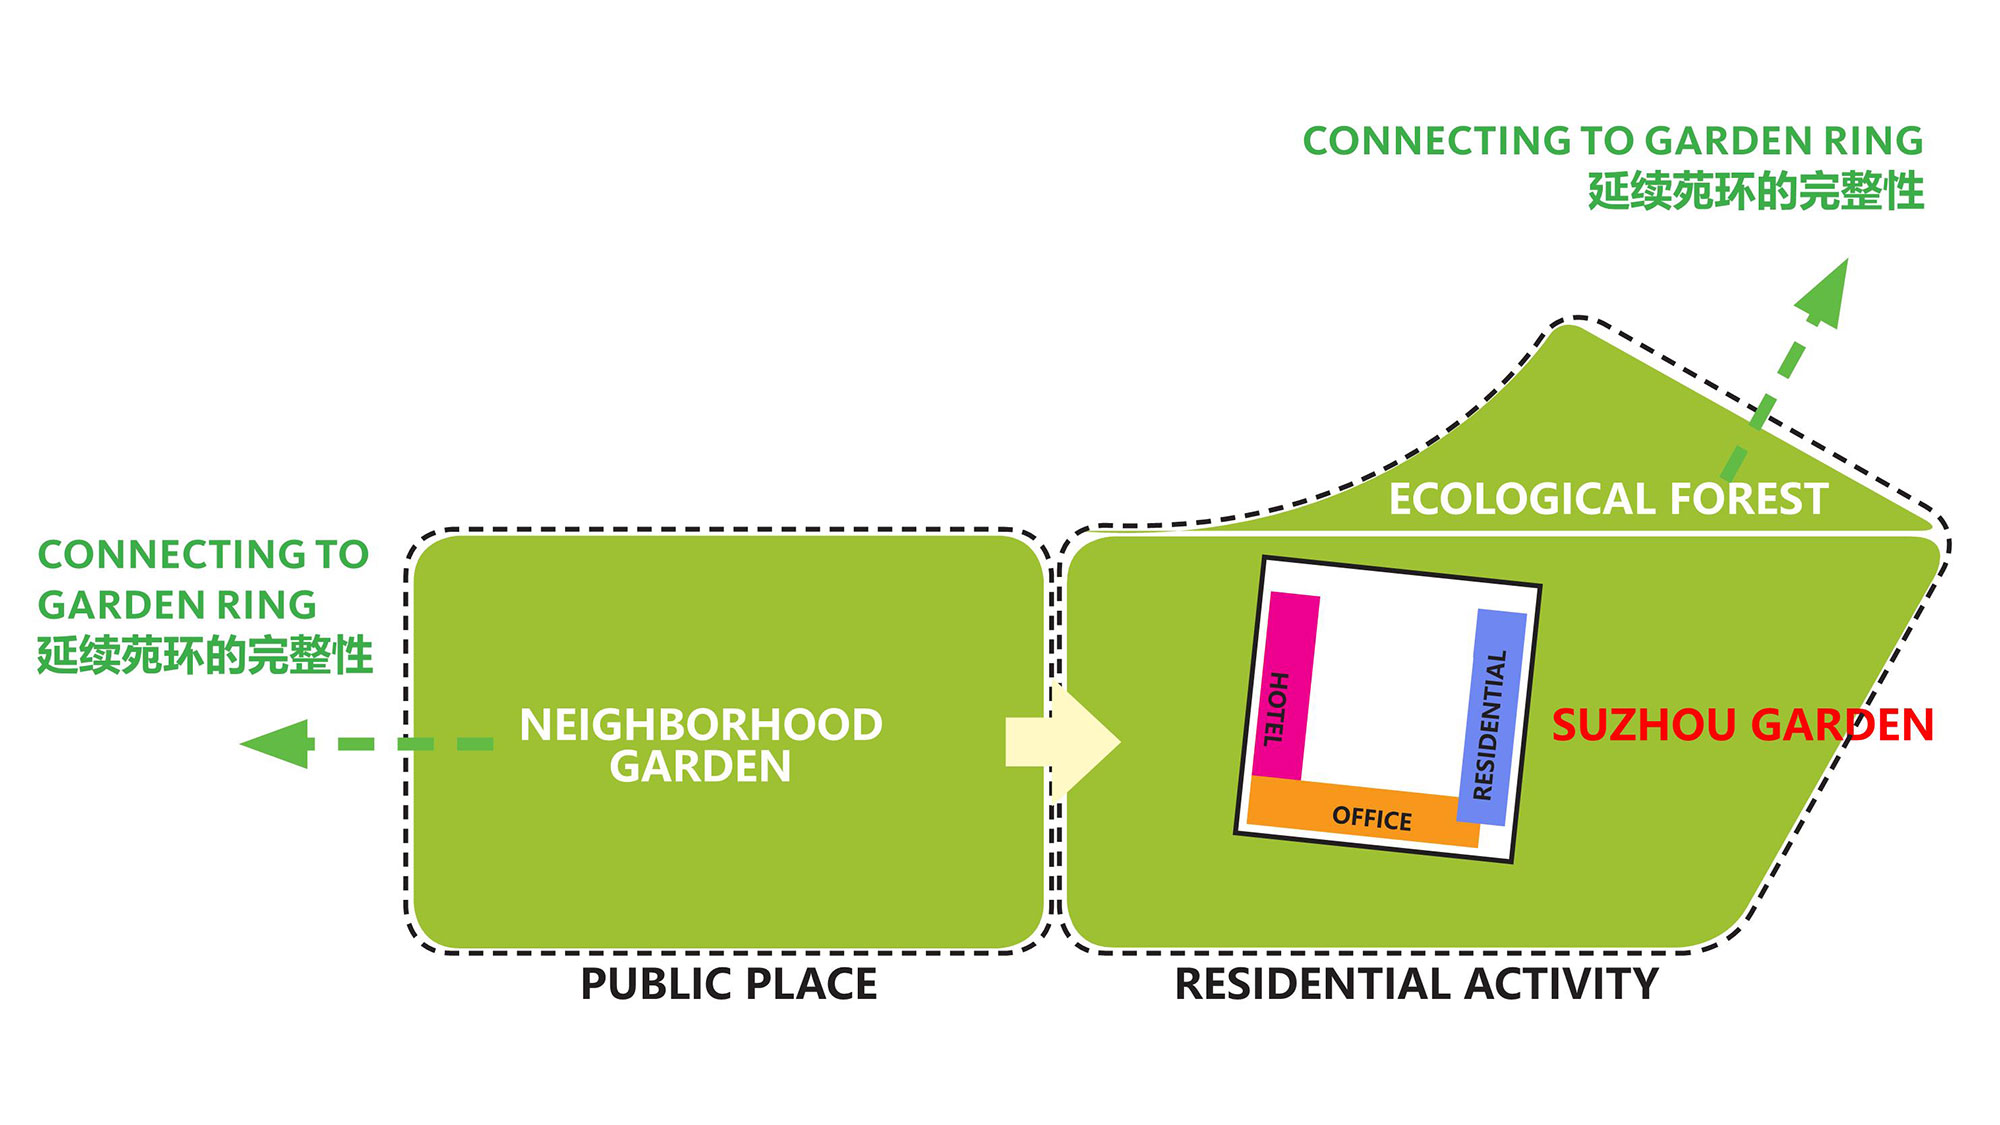 An analysis of the center's relation to public places and gardens.